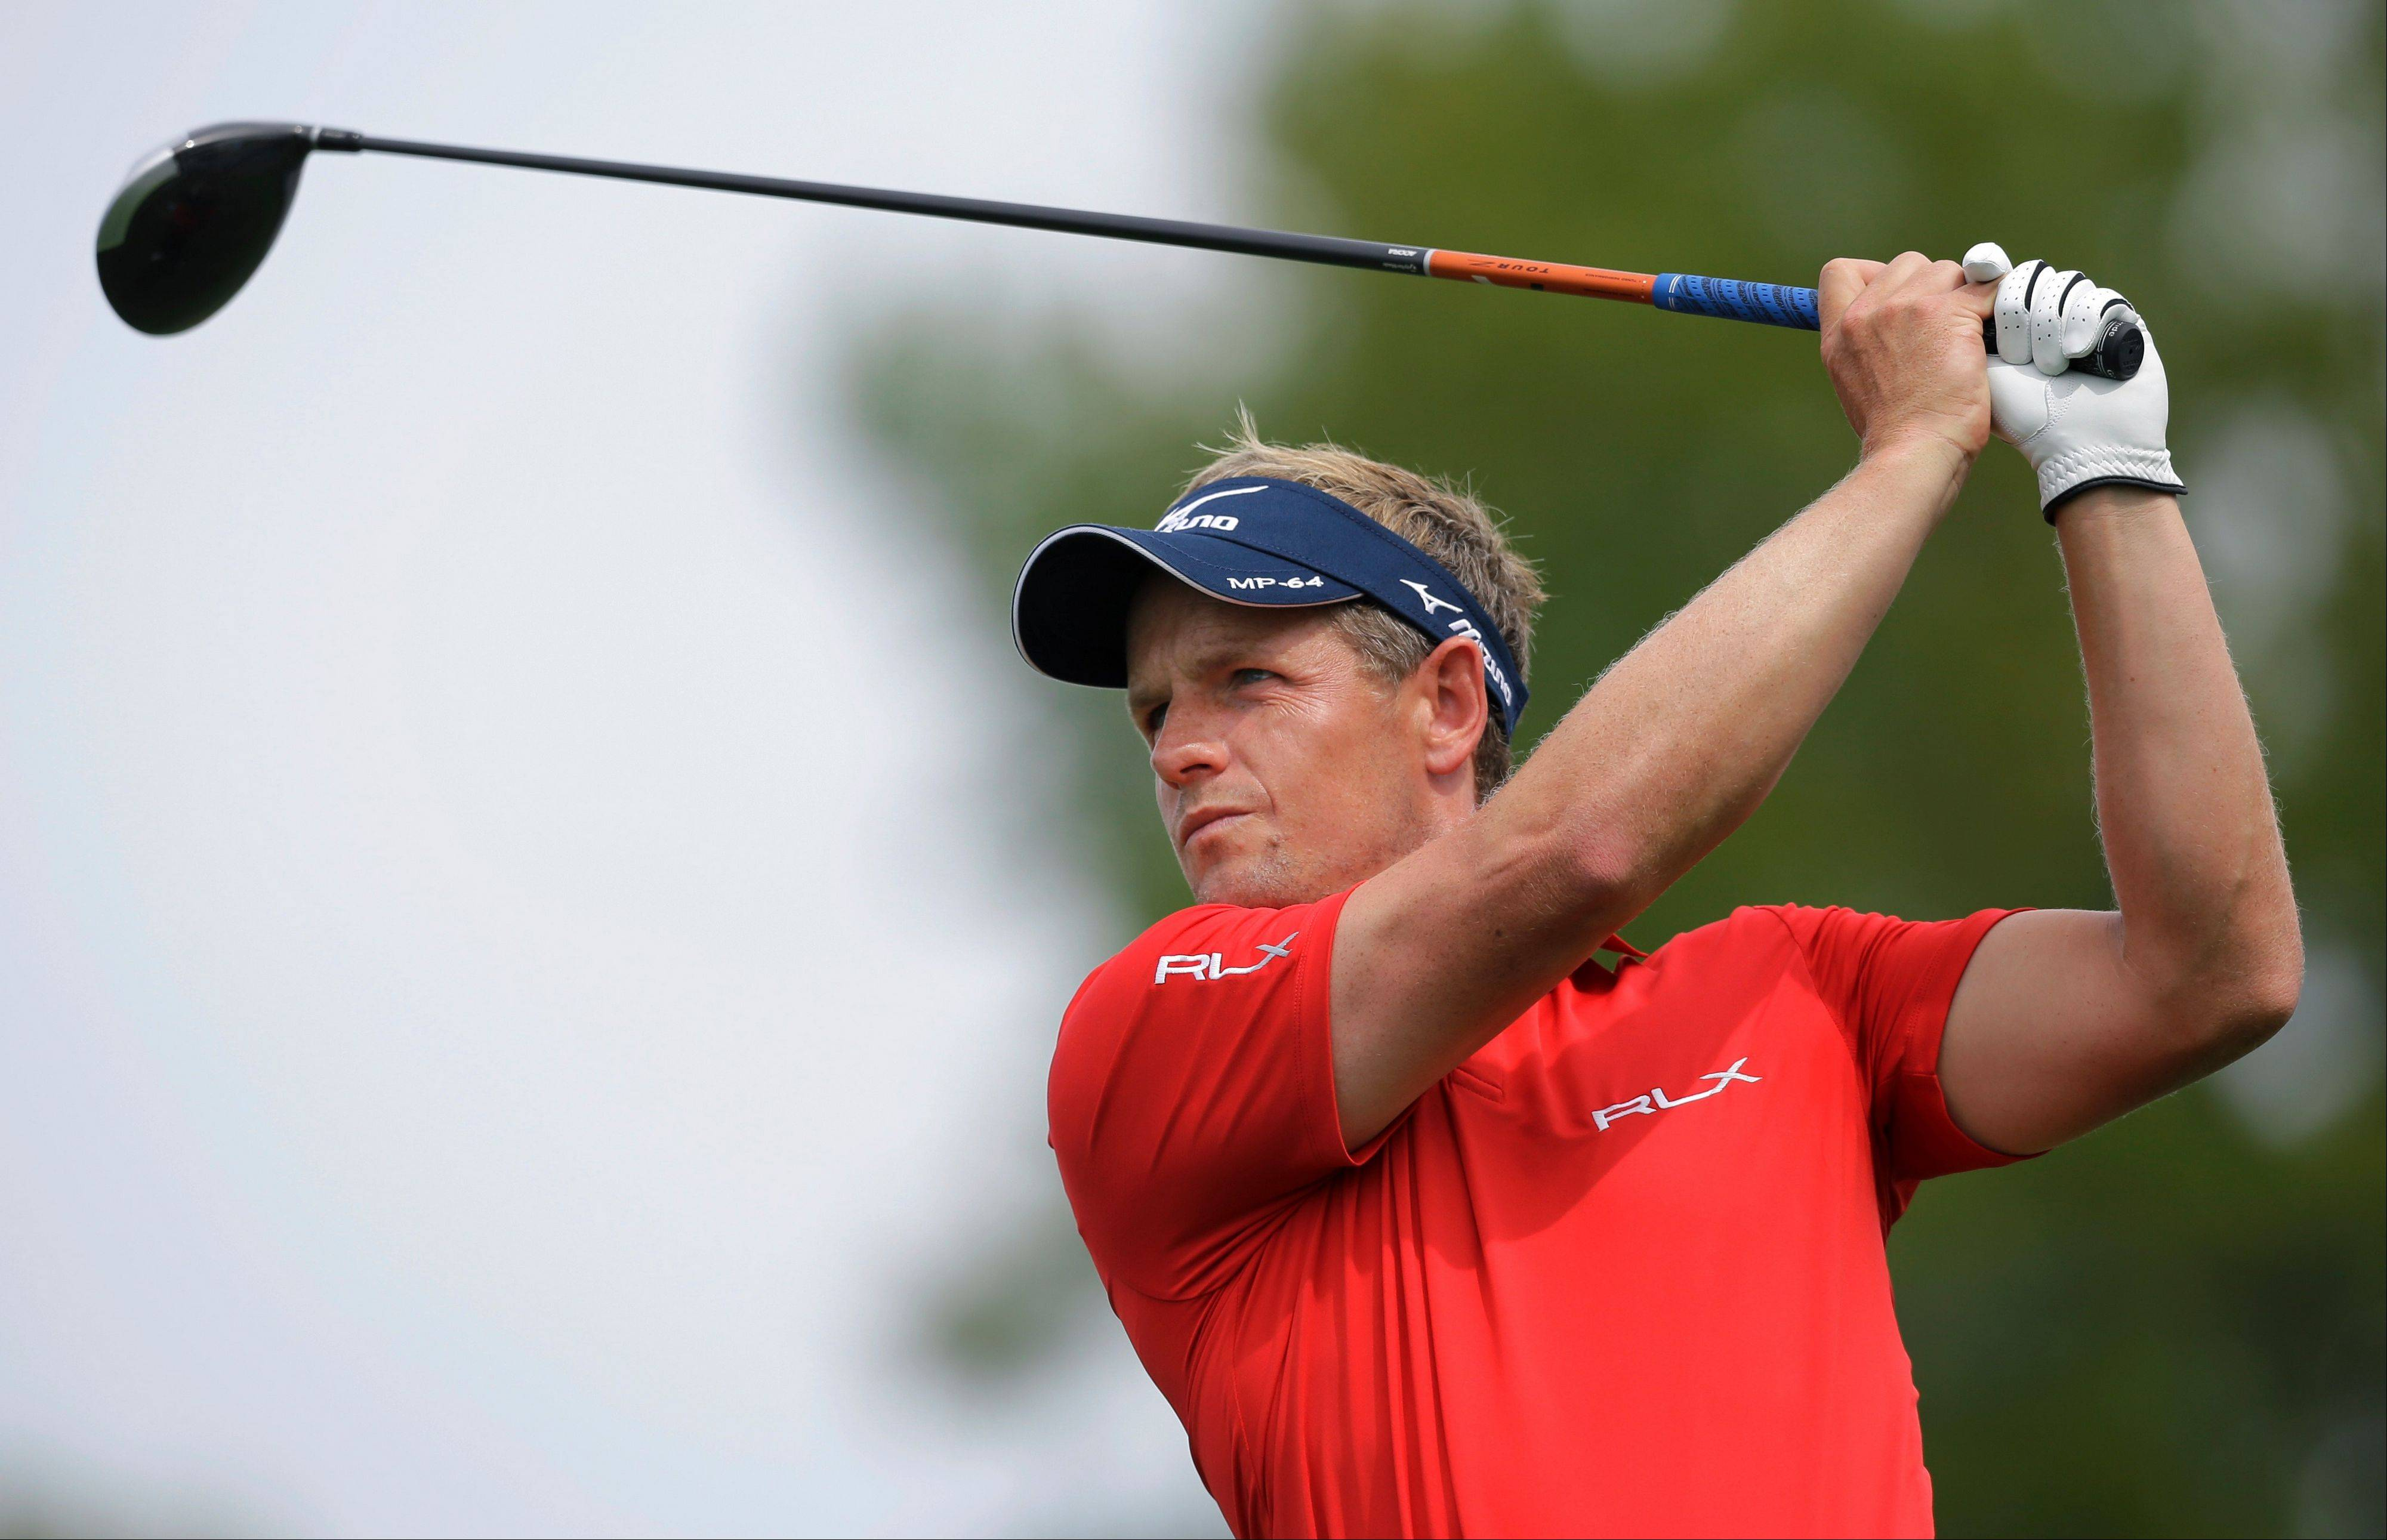 If Luke Donald misses the cut at the Deutsche Bank Championships, he might not qualify next month to play in the BWM Championship at Conway Farms, his home course.